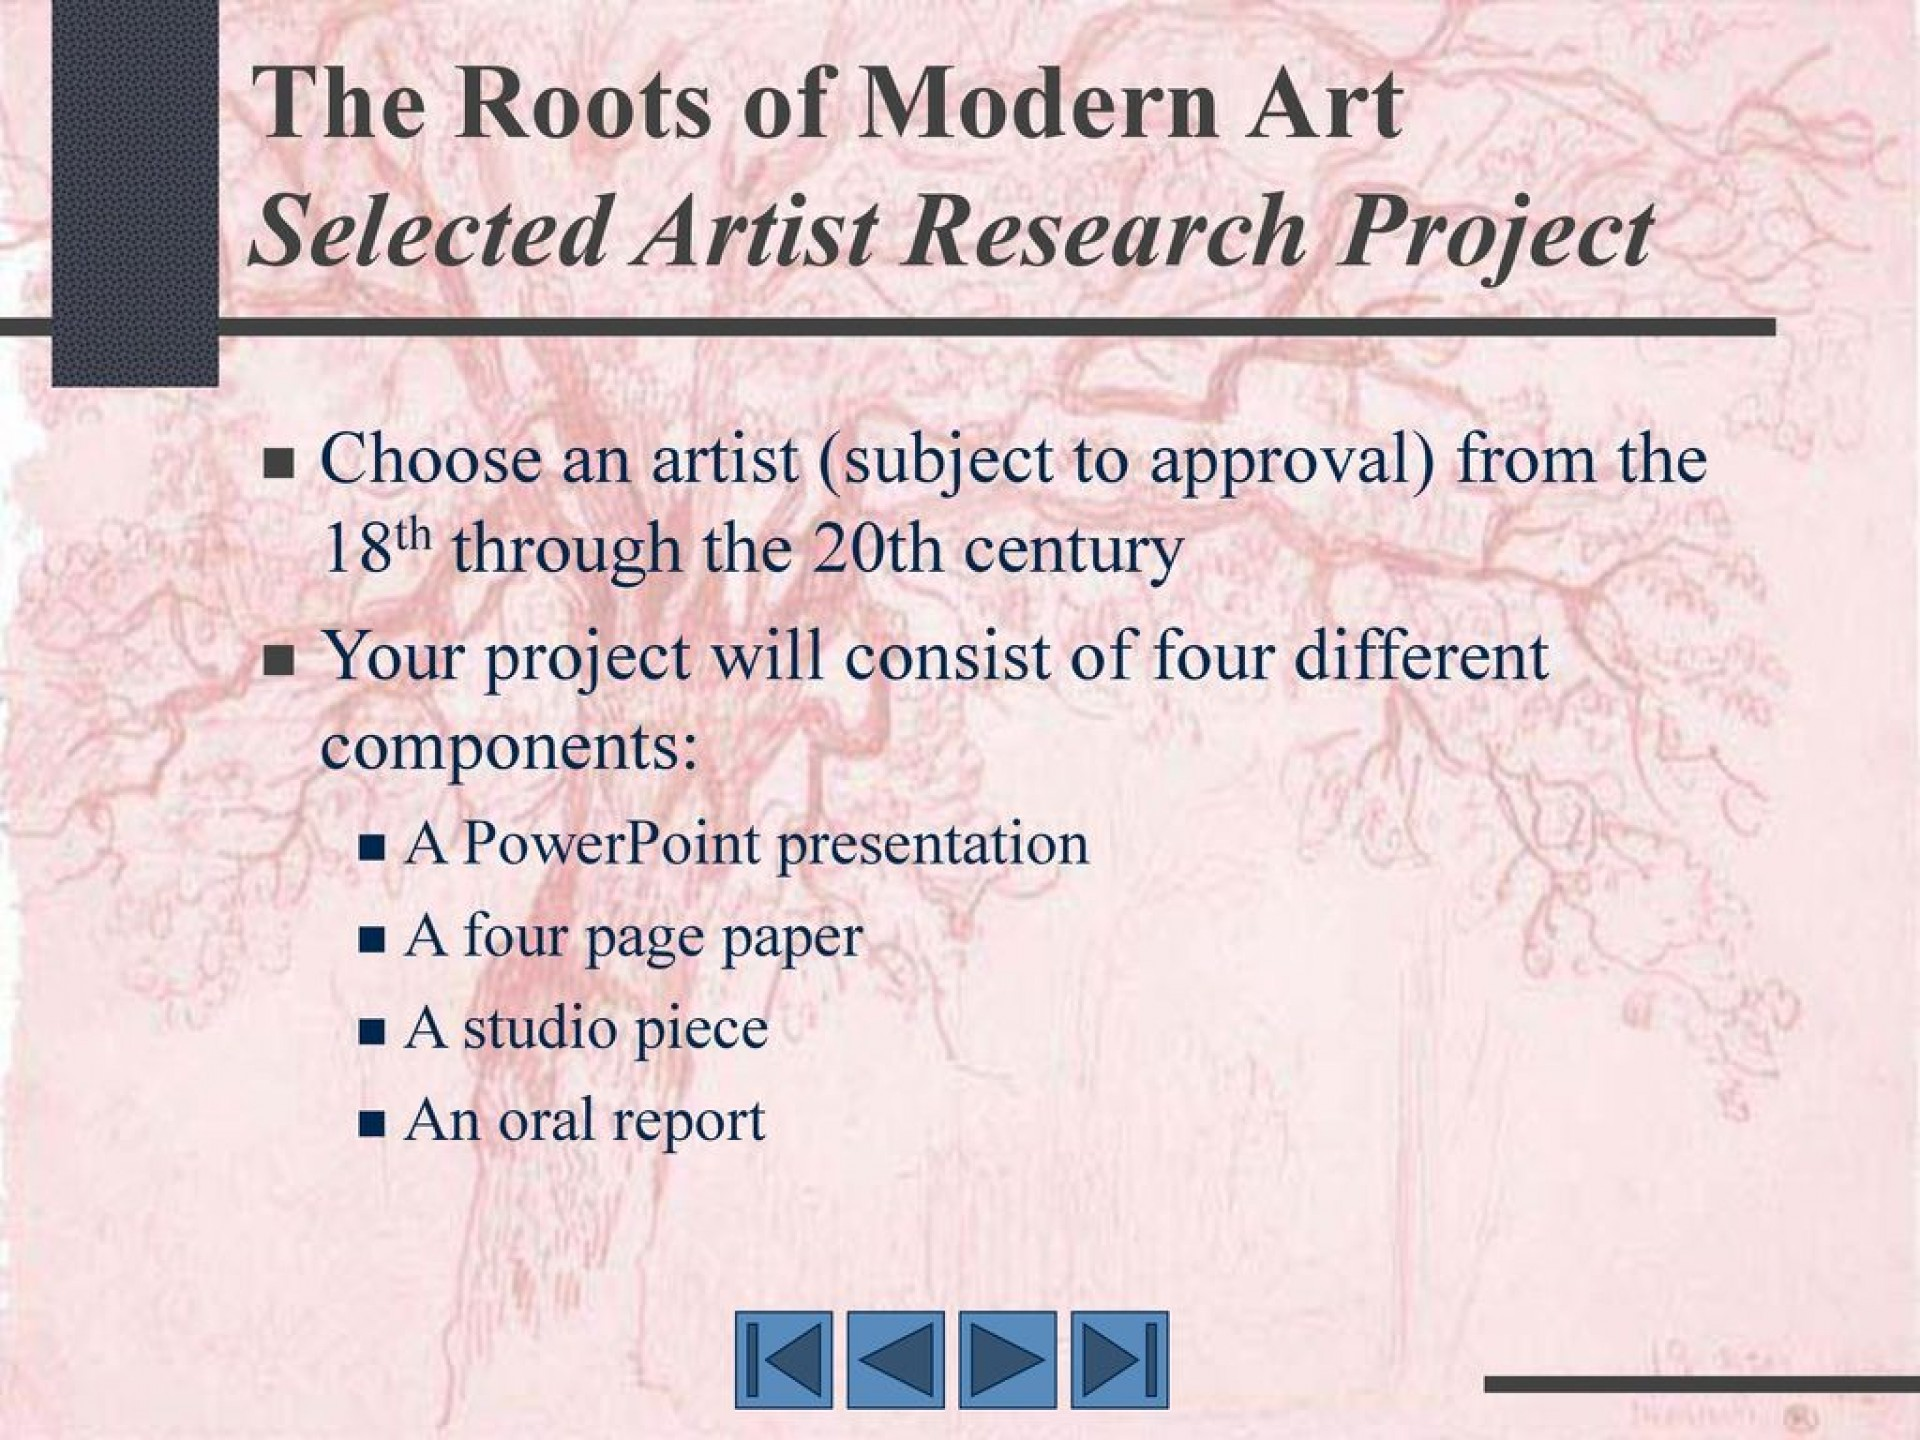 011 Research Paper Therootsofmodernartselectedartistresearchproject Component Of Wondrous Ppt 5 Parts A Qualitative 1920